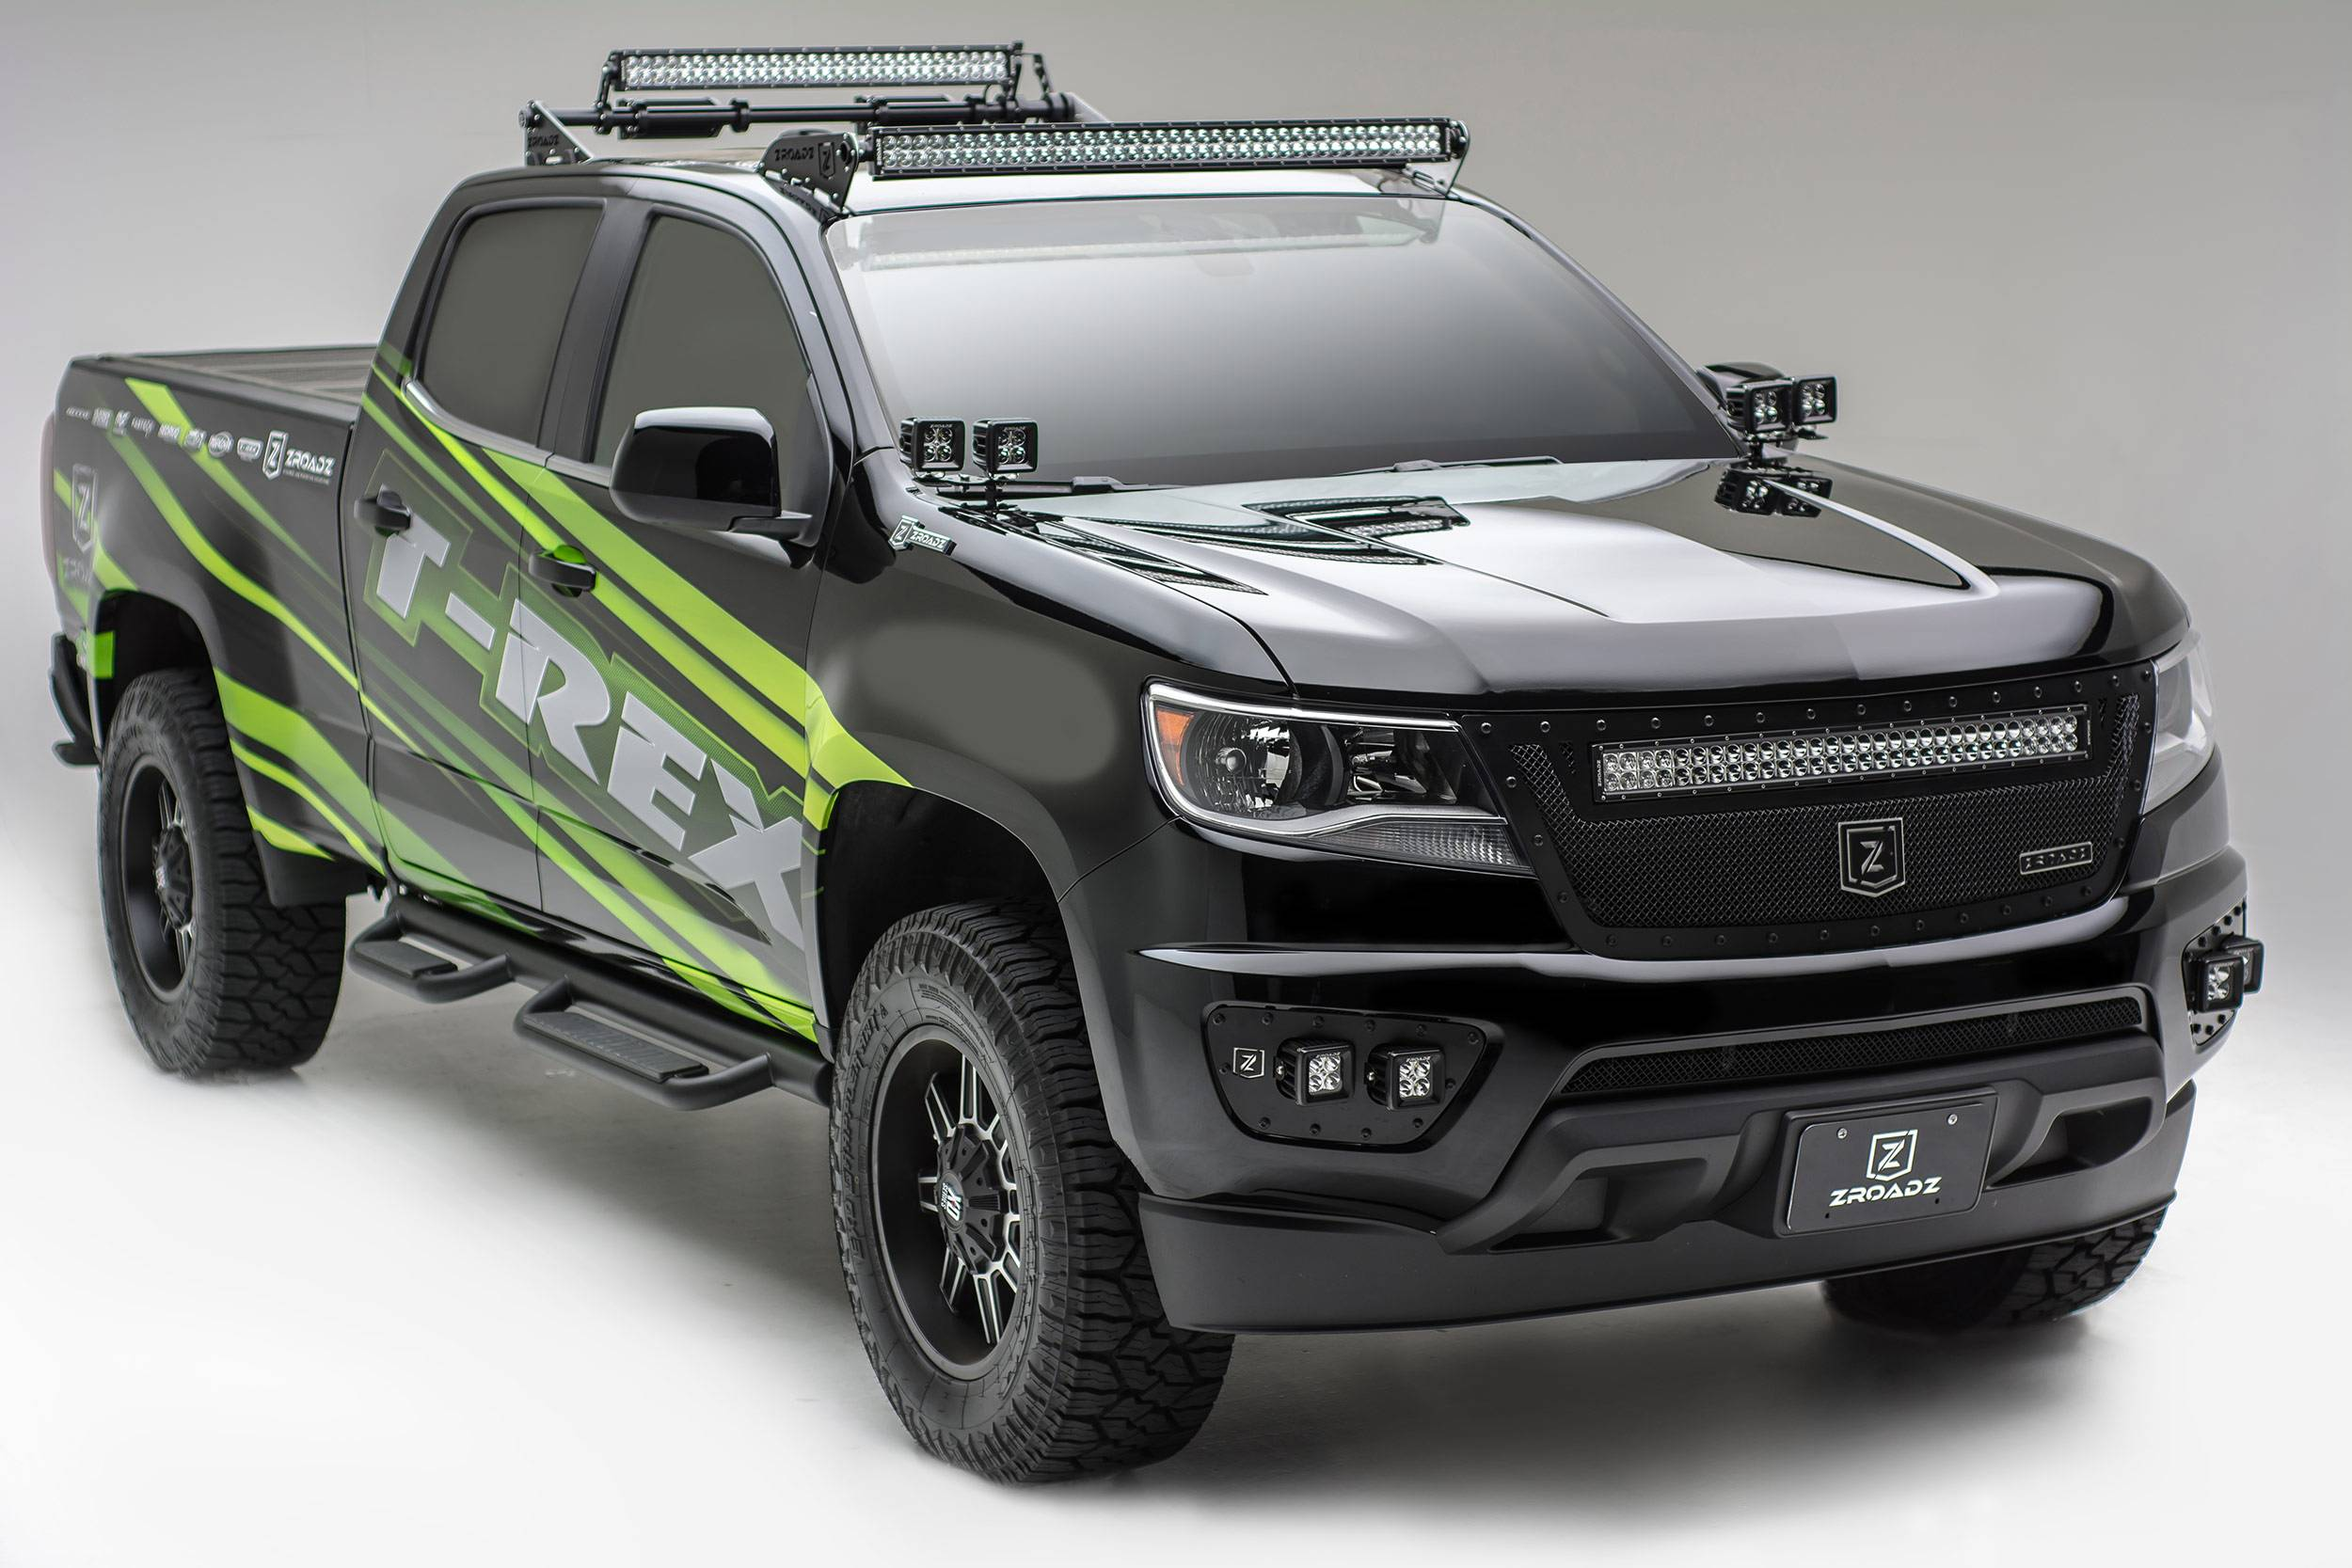 Chevy Colorado 2015-2019 led light bar brackets for 50 inch curved